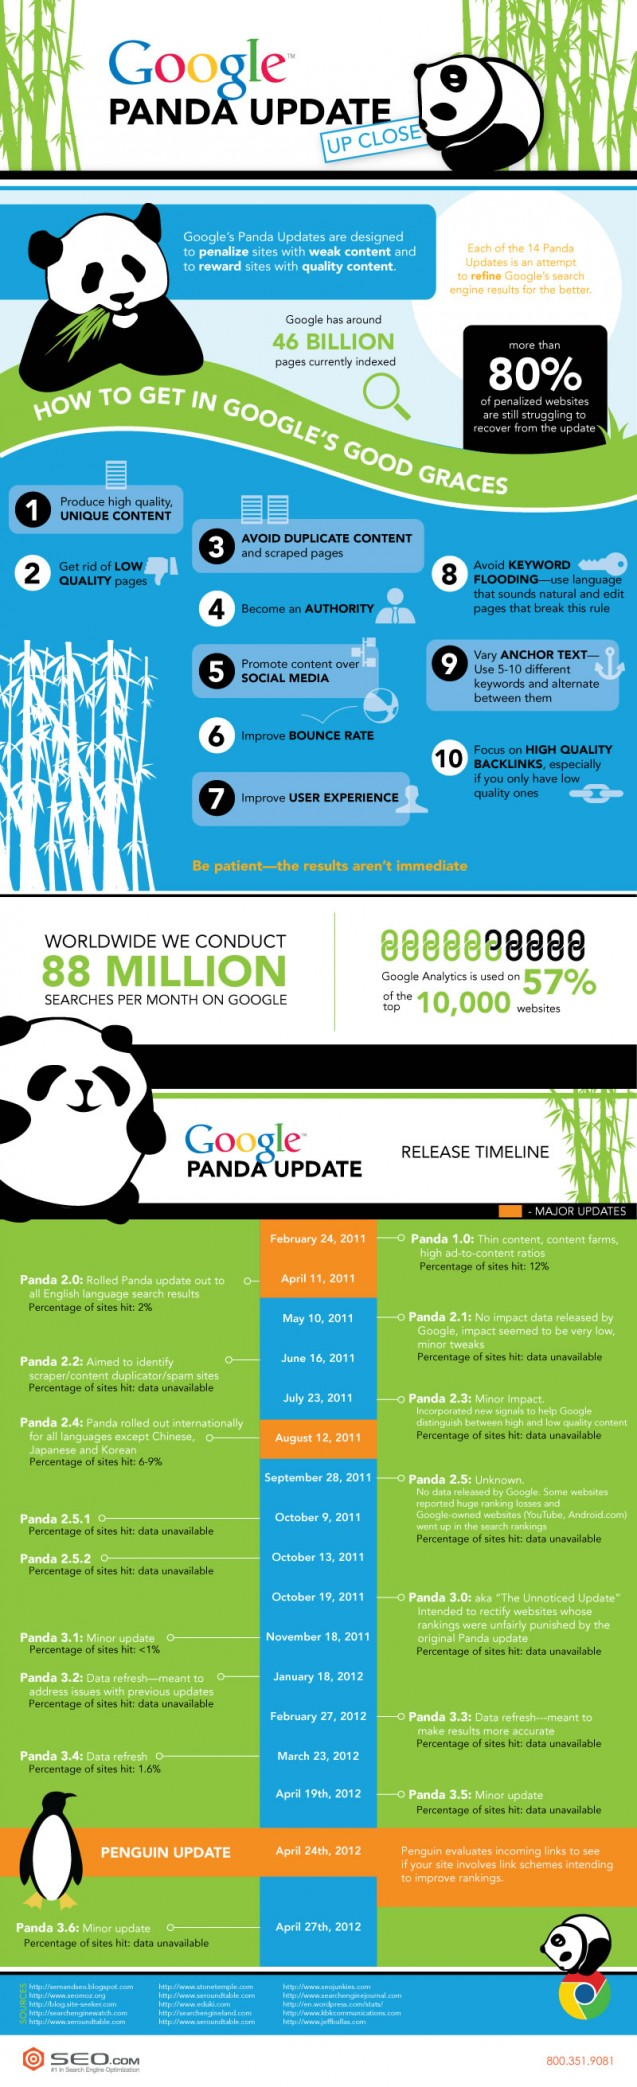 Google Panda Update Tips and Timeline [Infographic]